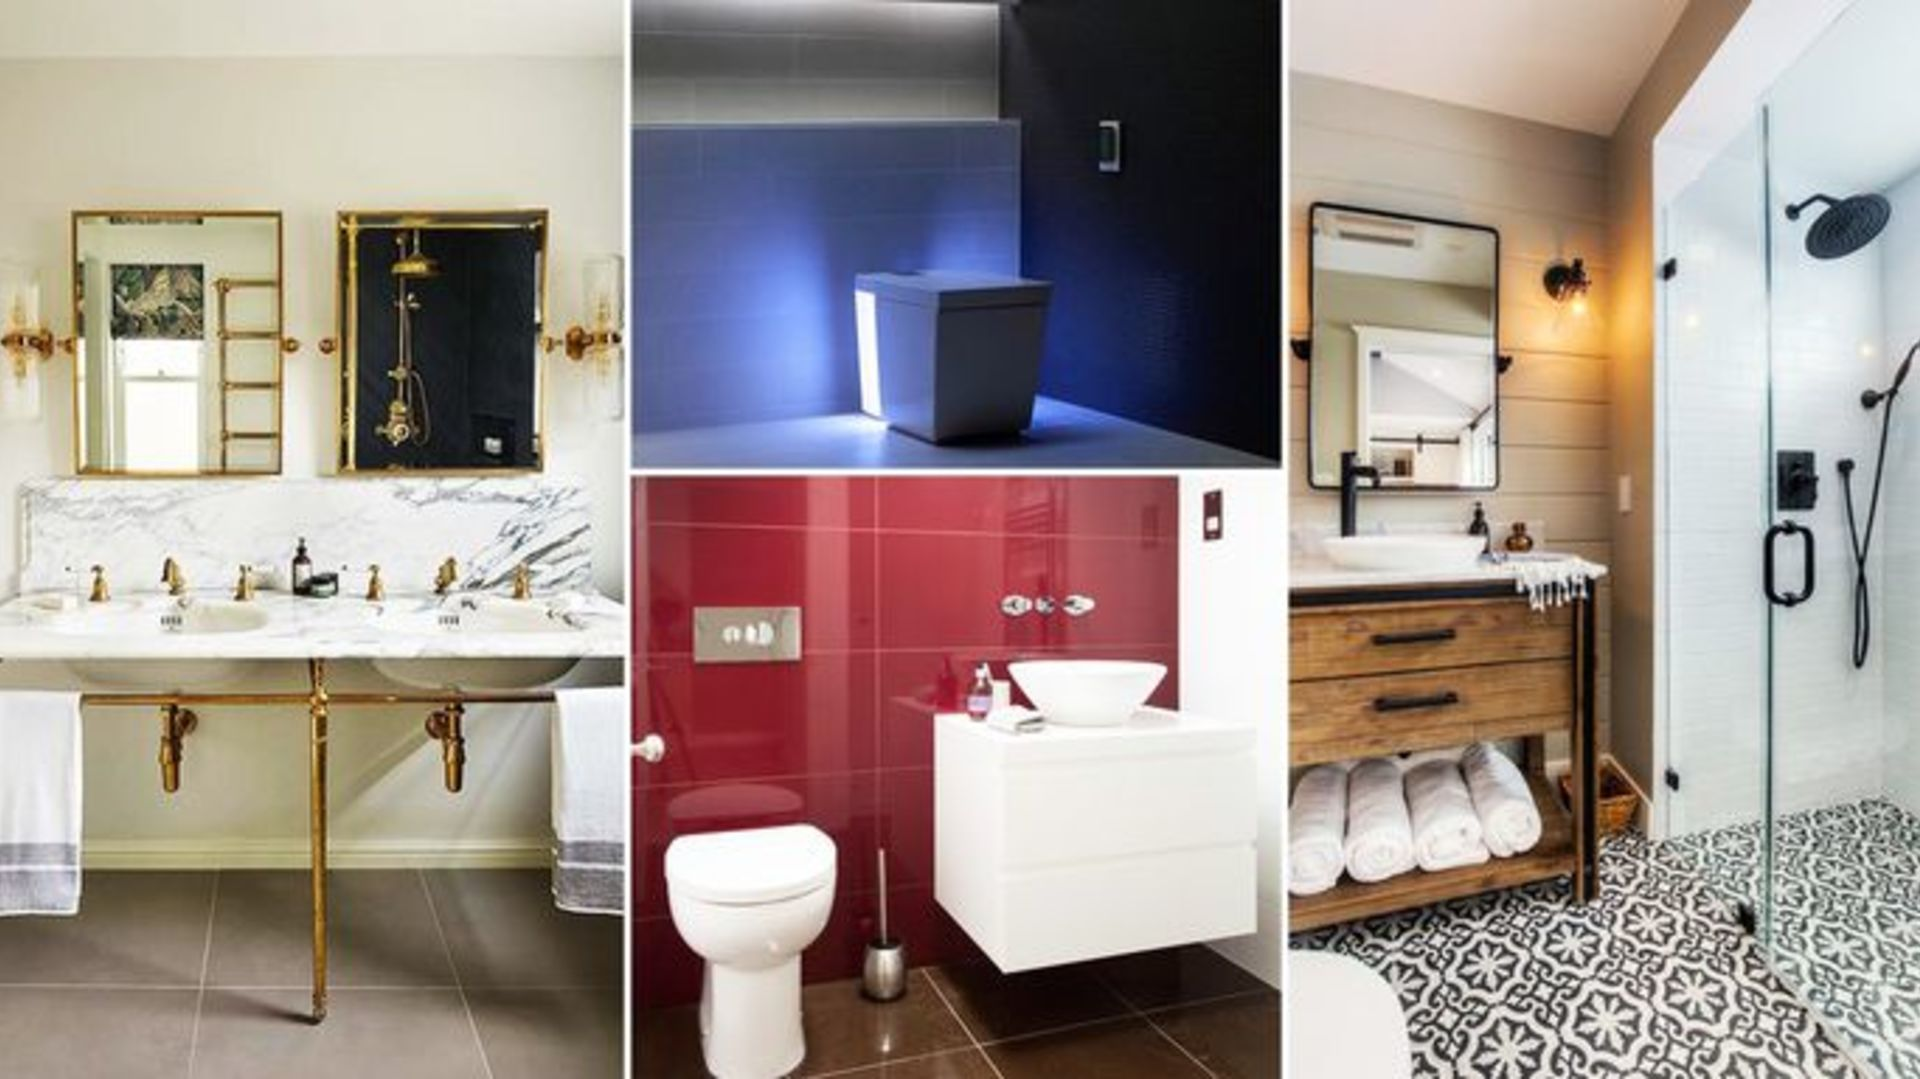 7 of the Most Stunning Bathroom Design Trends of 2018